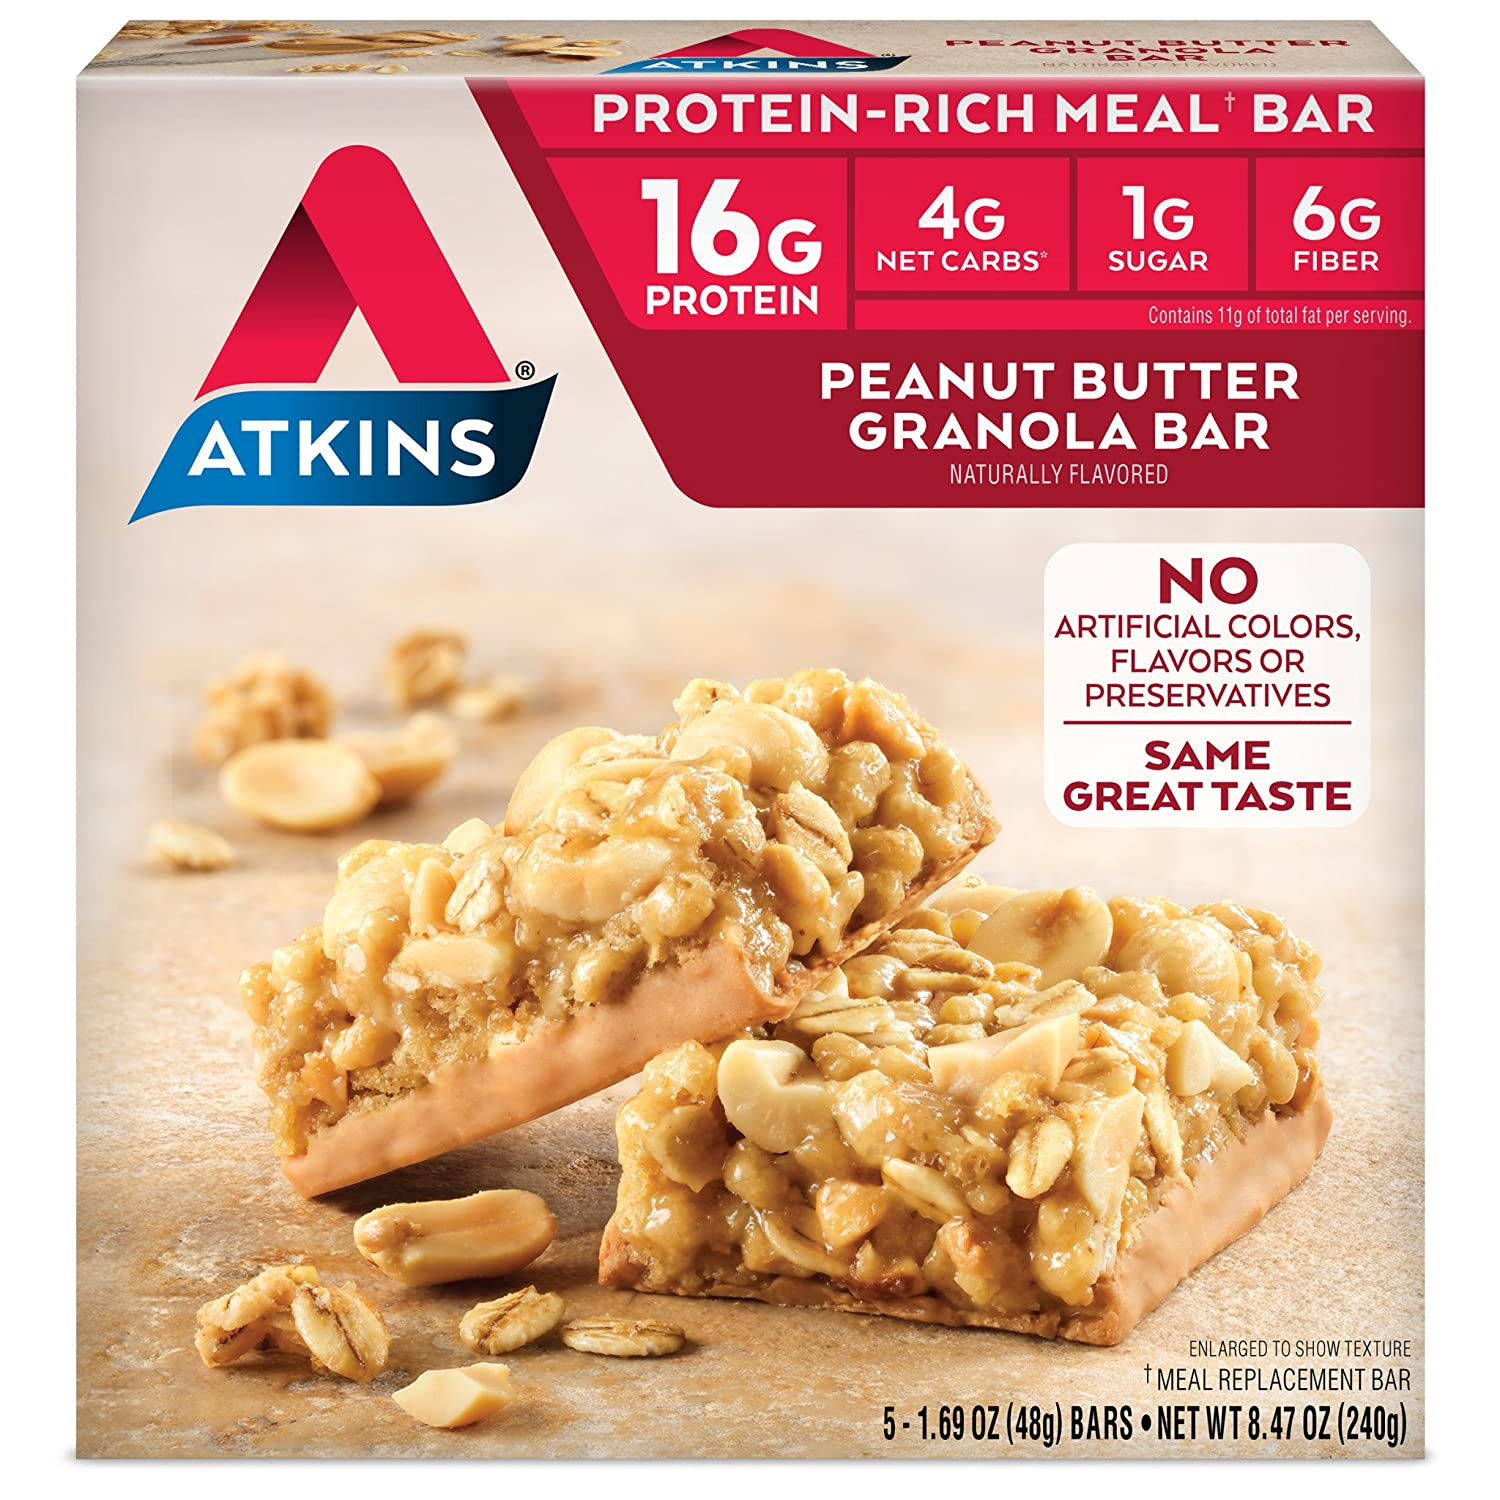 Top 10 Best Low Carb & Keto Breakfast Bars